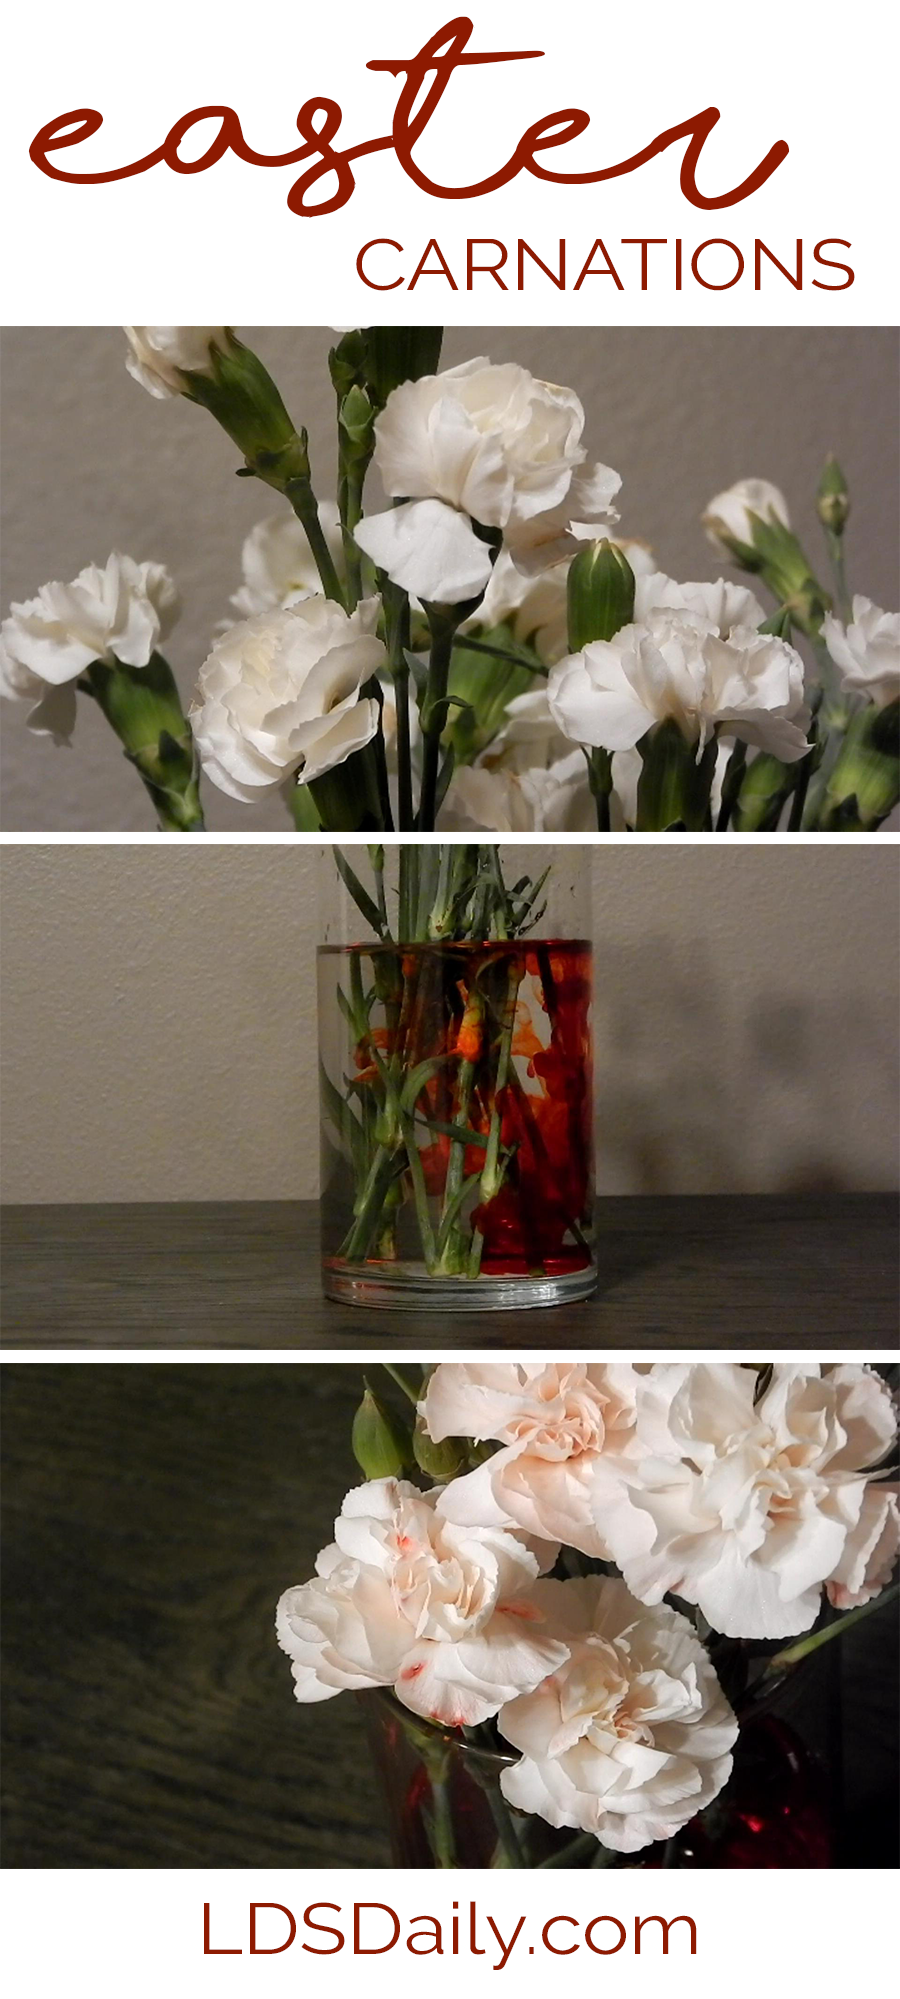 lds-object-lesson-easter-carnations